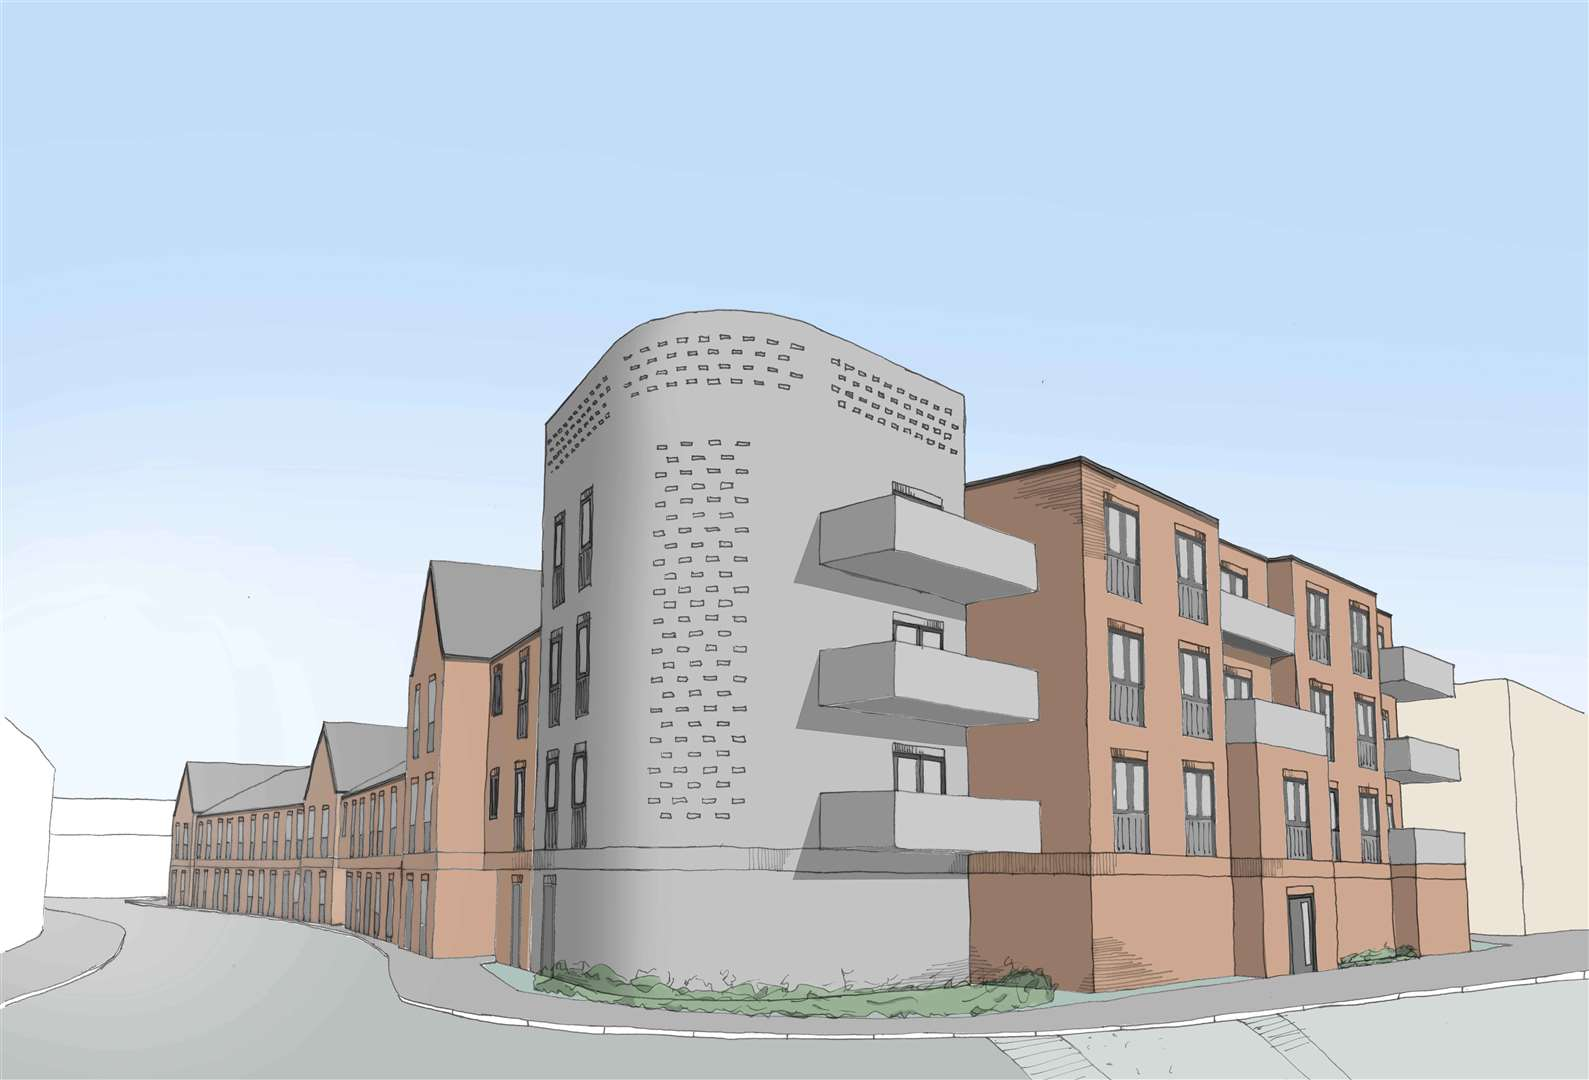 An artists' impression of the proposed development at Hillington Square, which has today been rejected by West Norfolk Council's planning committee